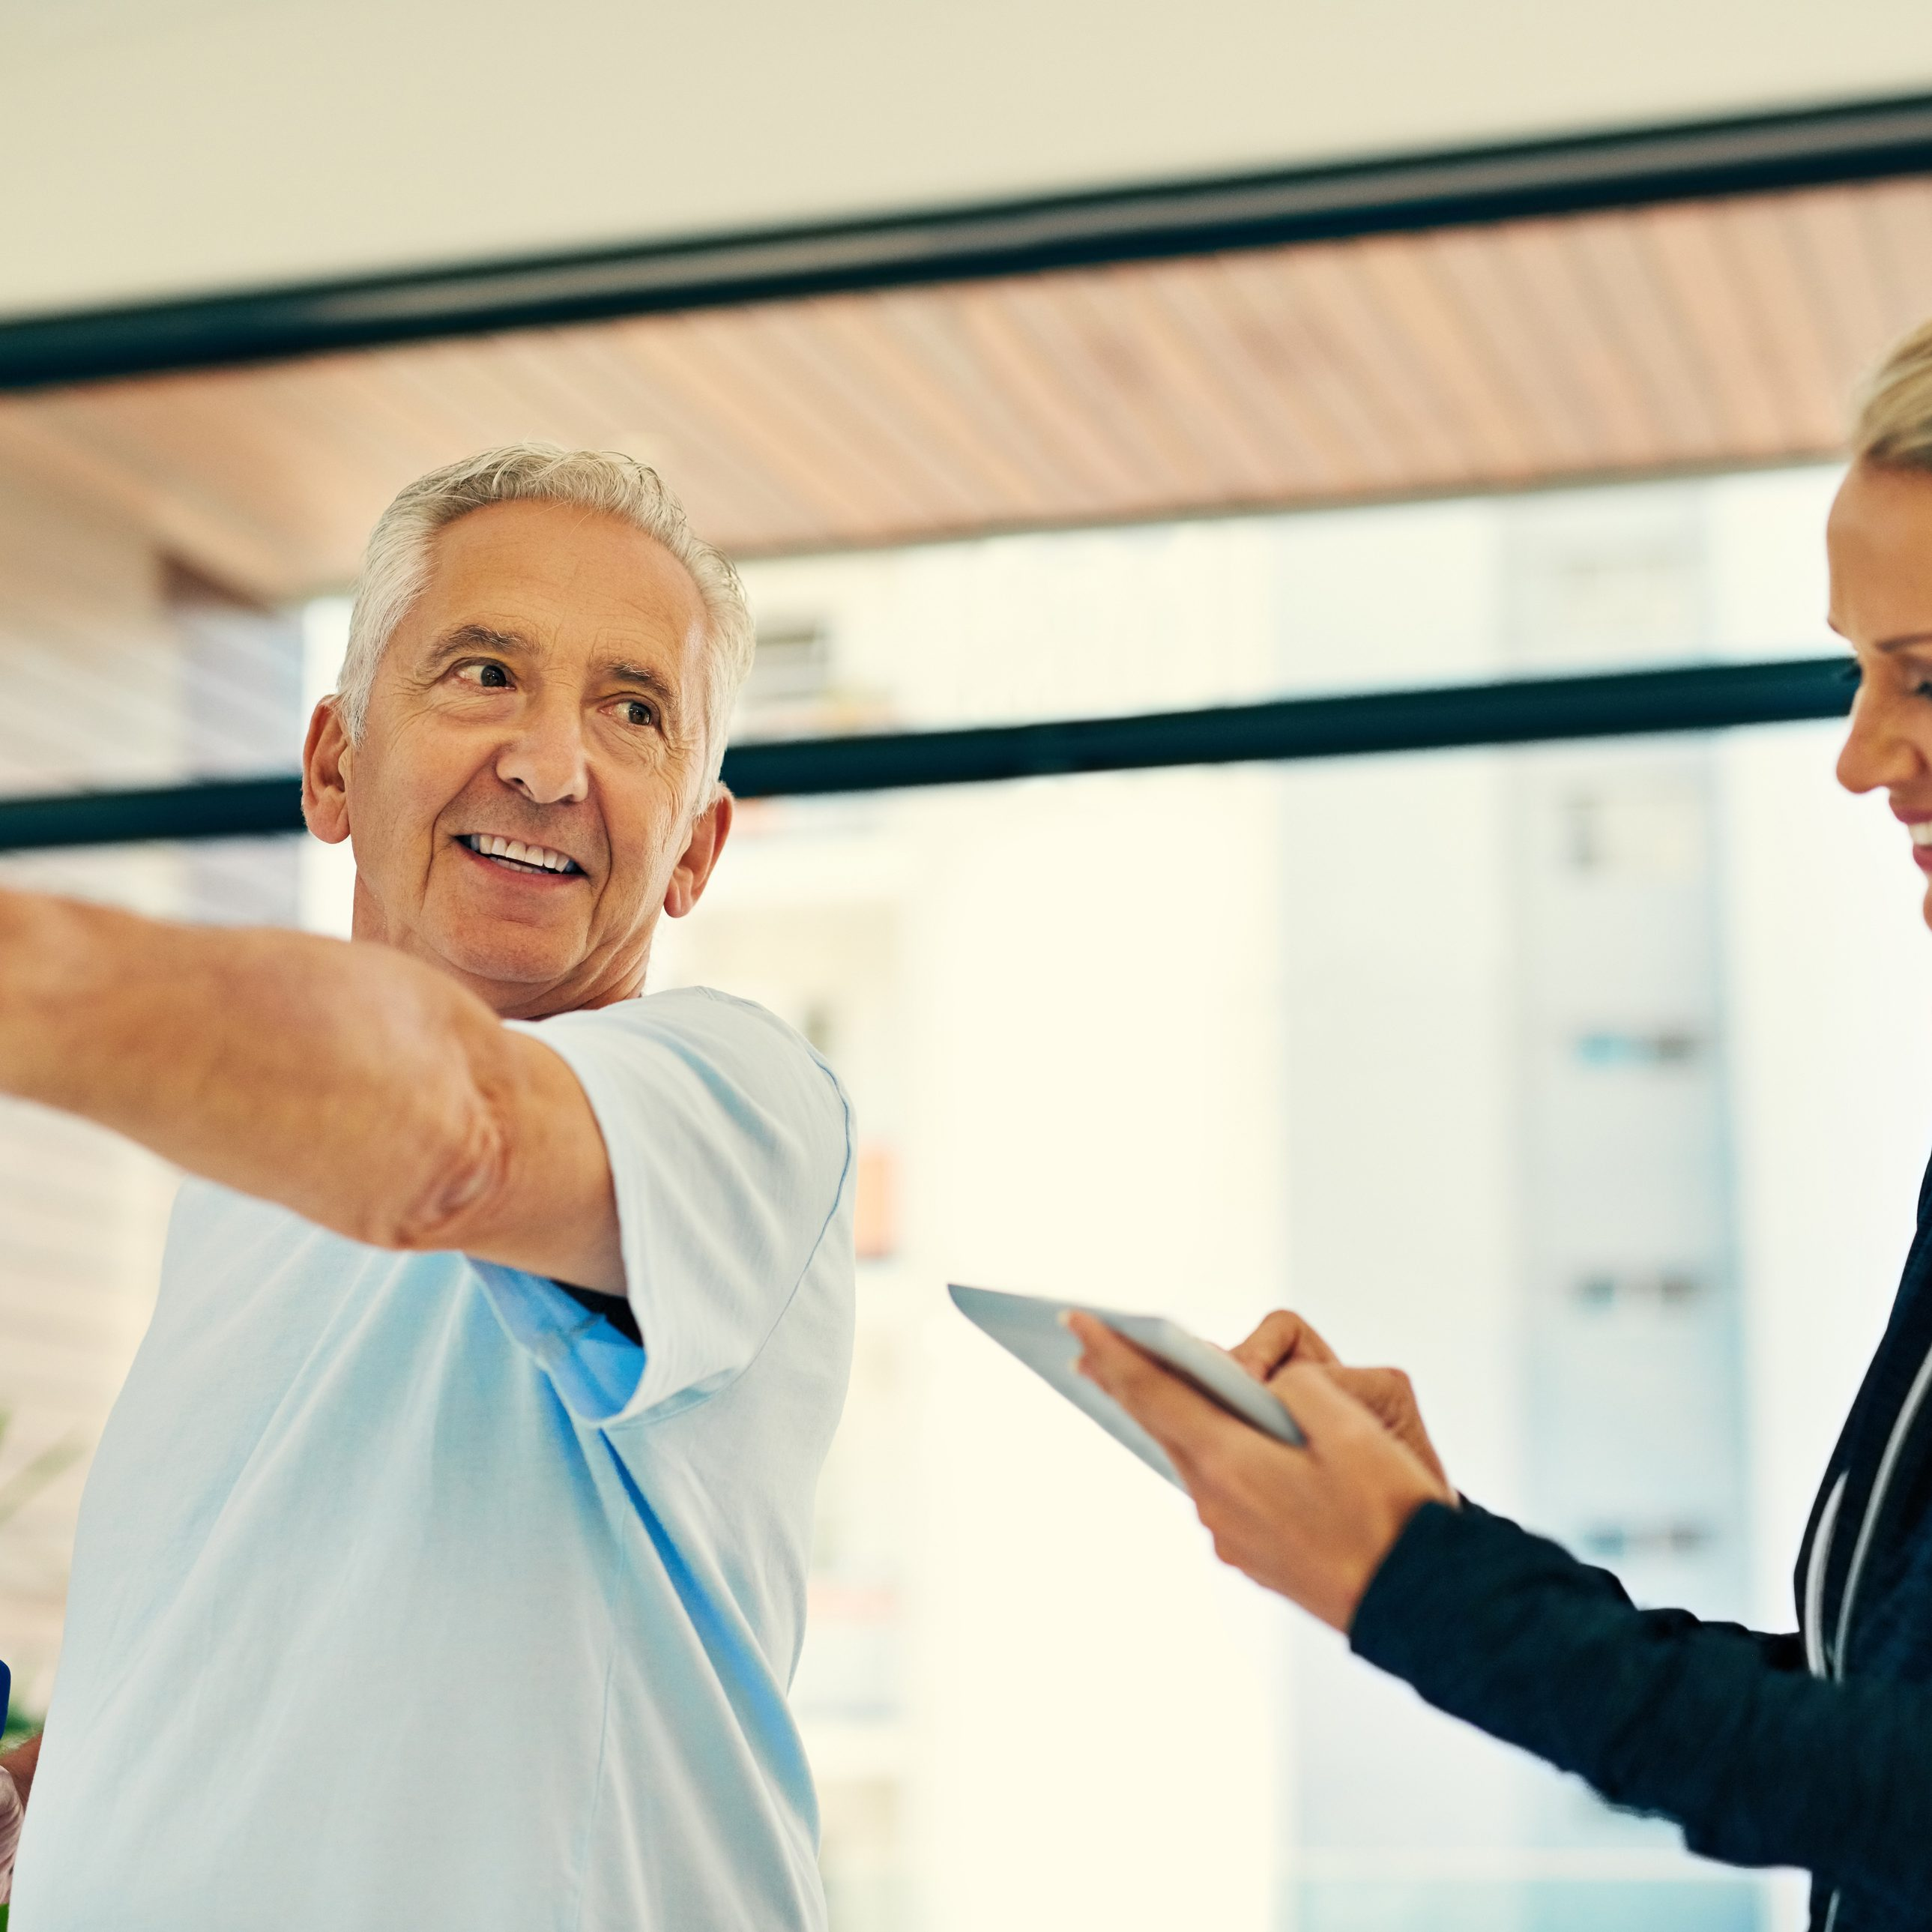 Shot of a happy physiotherapist tracking her senior patient's progress on a tablet while he lifts weights